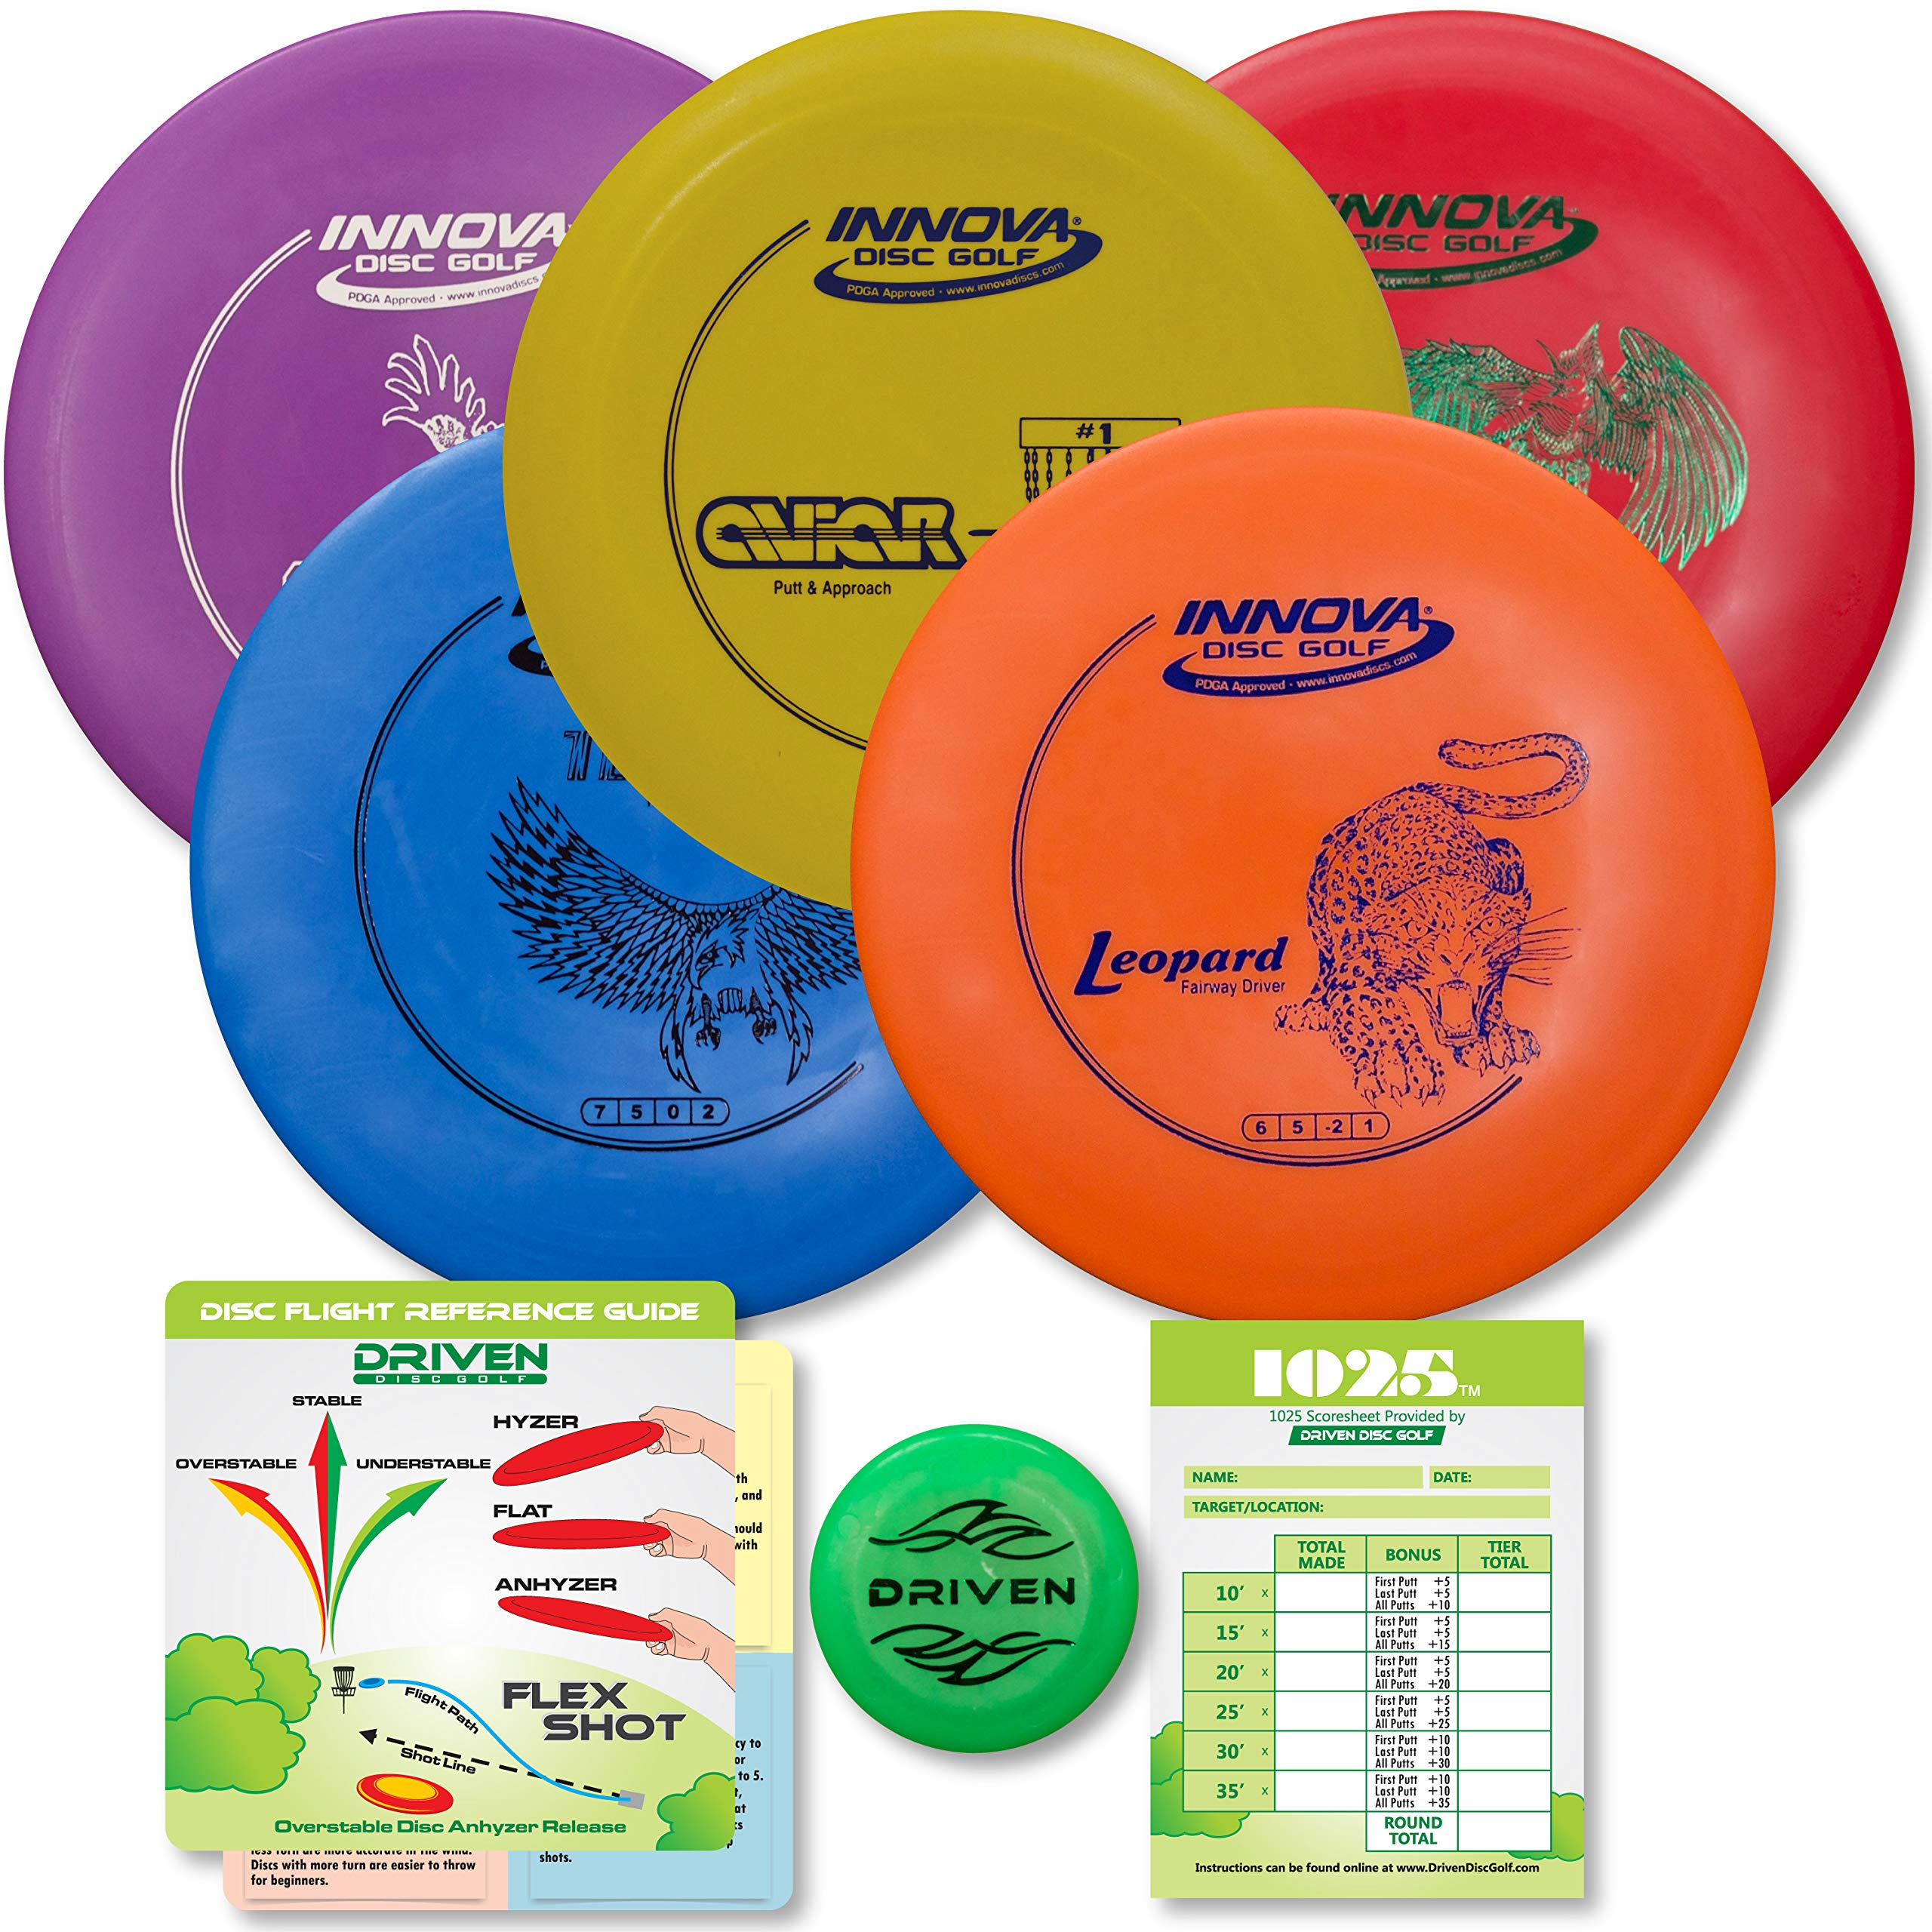 Driven Disc Golf Set - Innova 5 Disc Set by Driven Disc Golf